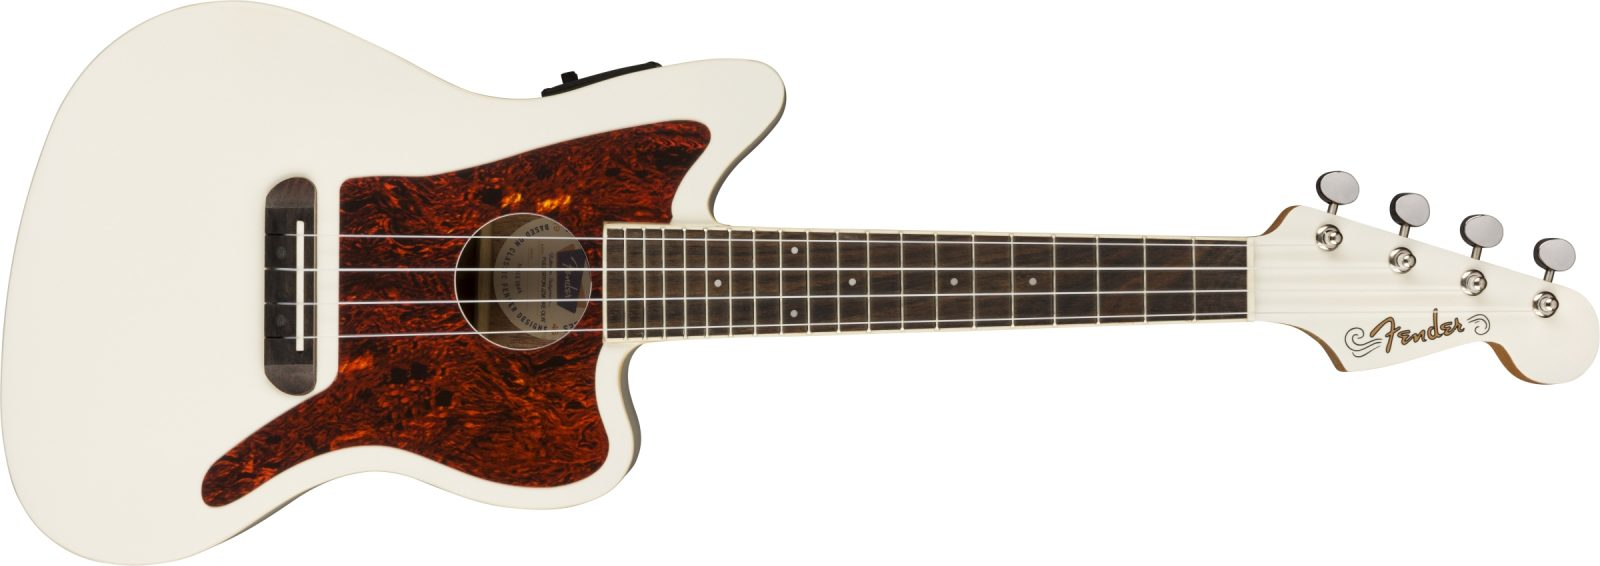 Dadsnet Christmas Gift Guide 2020, Fullerton Jazzmaster Uke Olympic White 1600x566%, daily-dad, product-review%